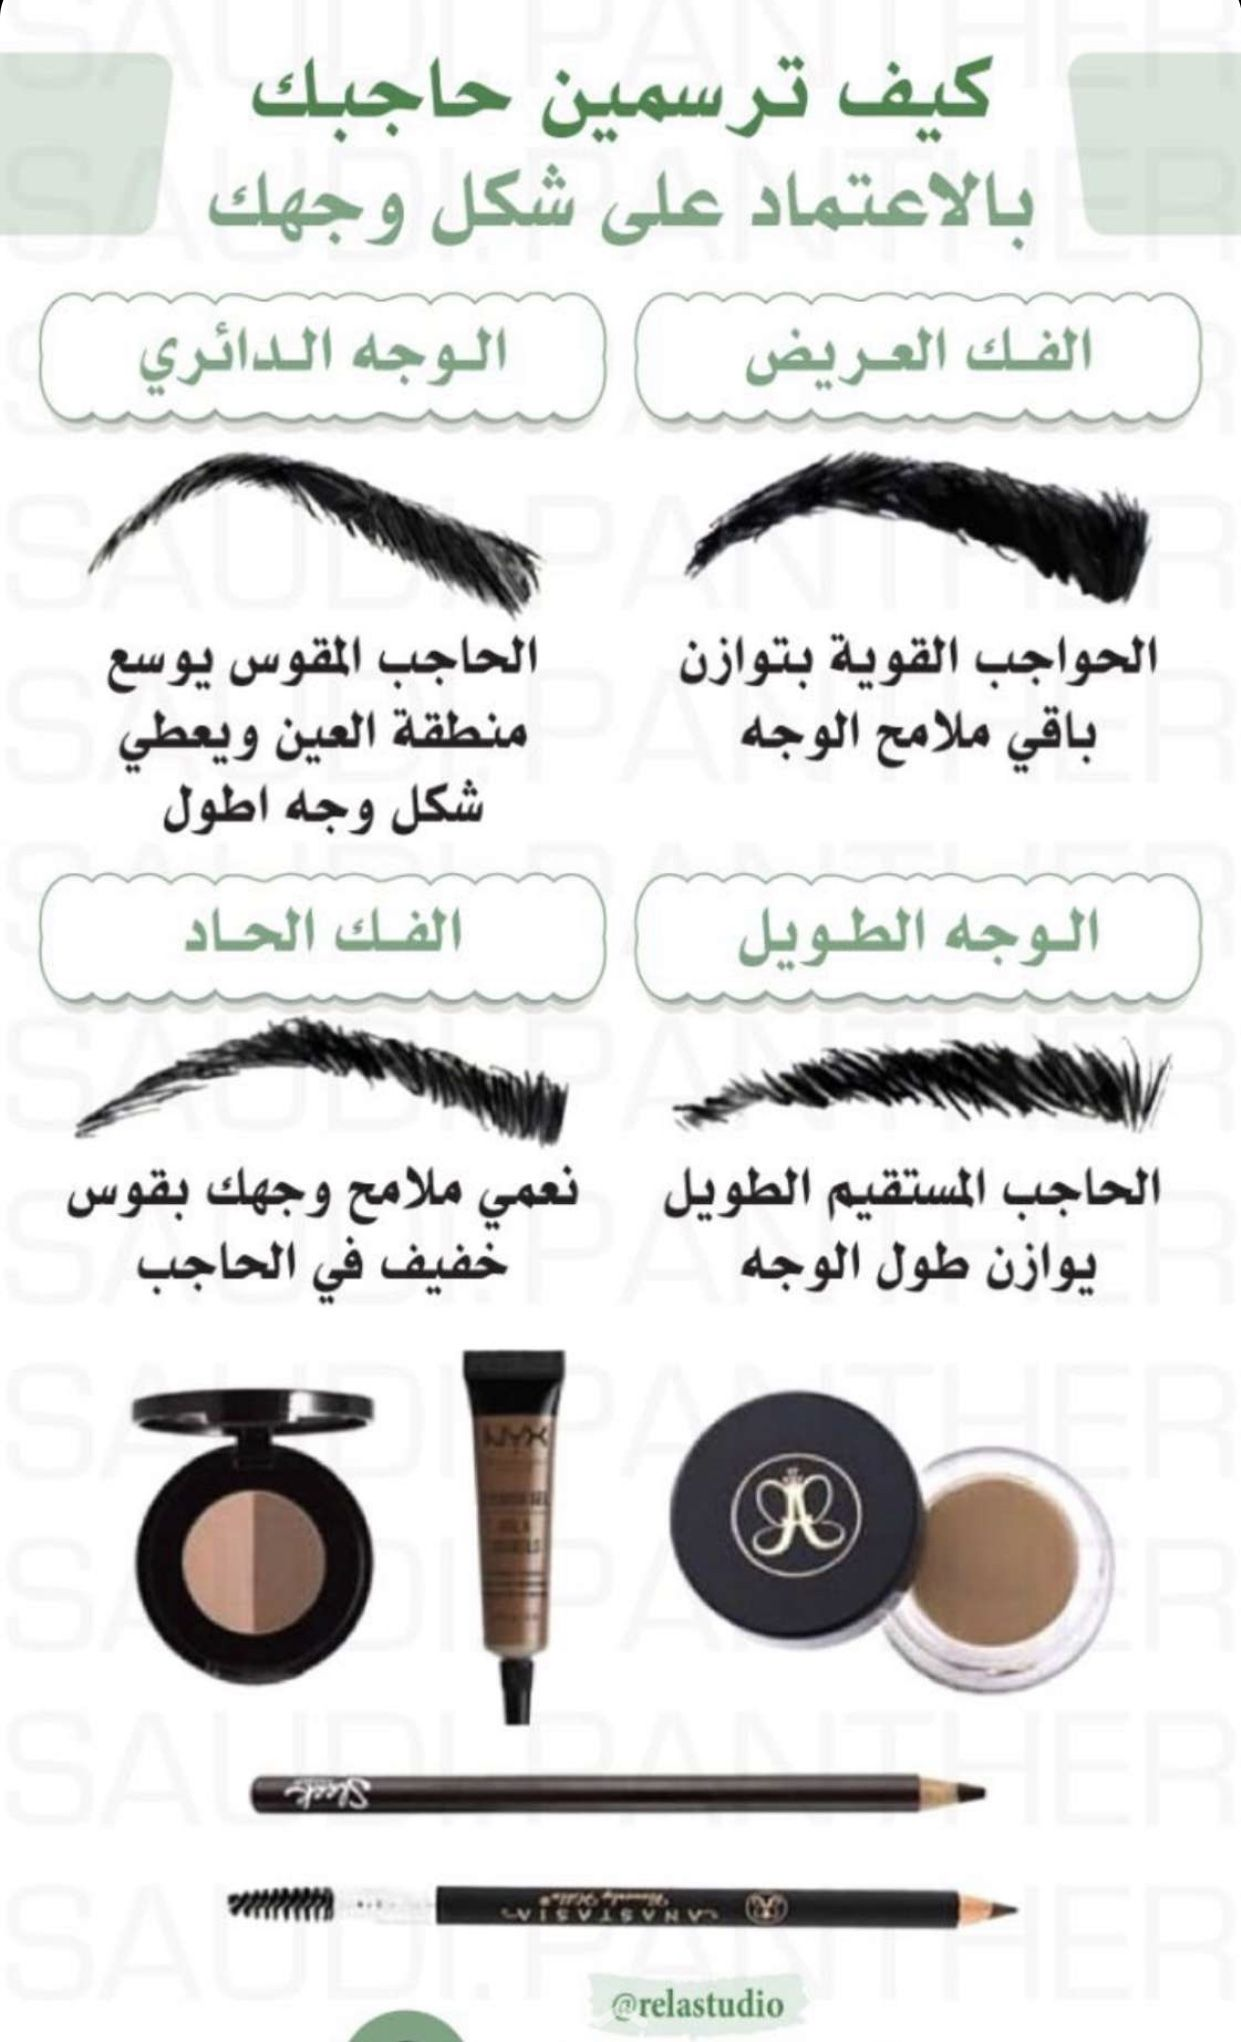 Pin by Re0o0iry on Makeupمكياج in 2020 Eye makeup